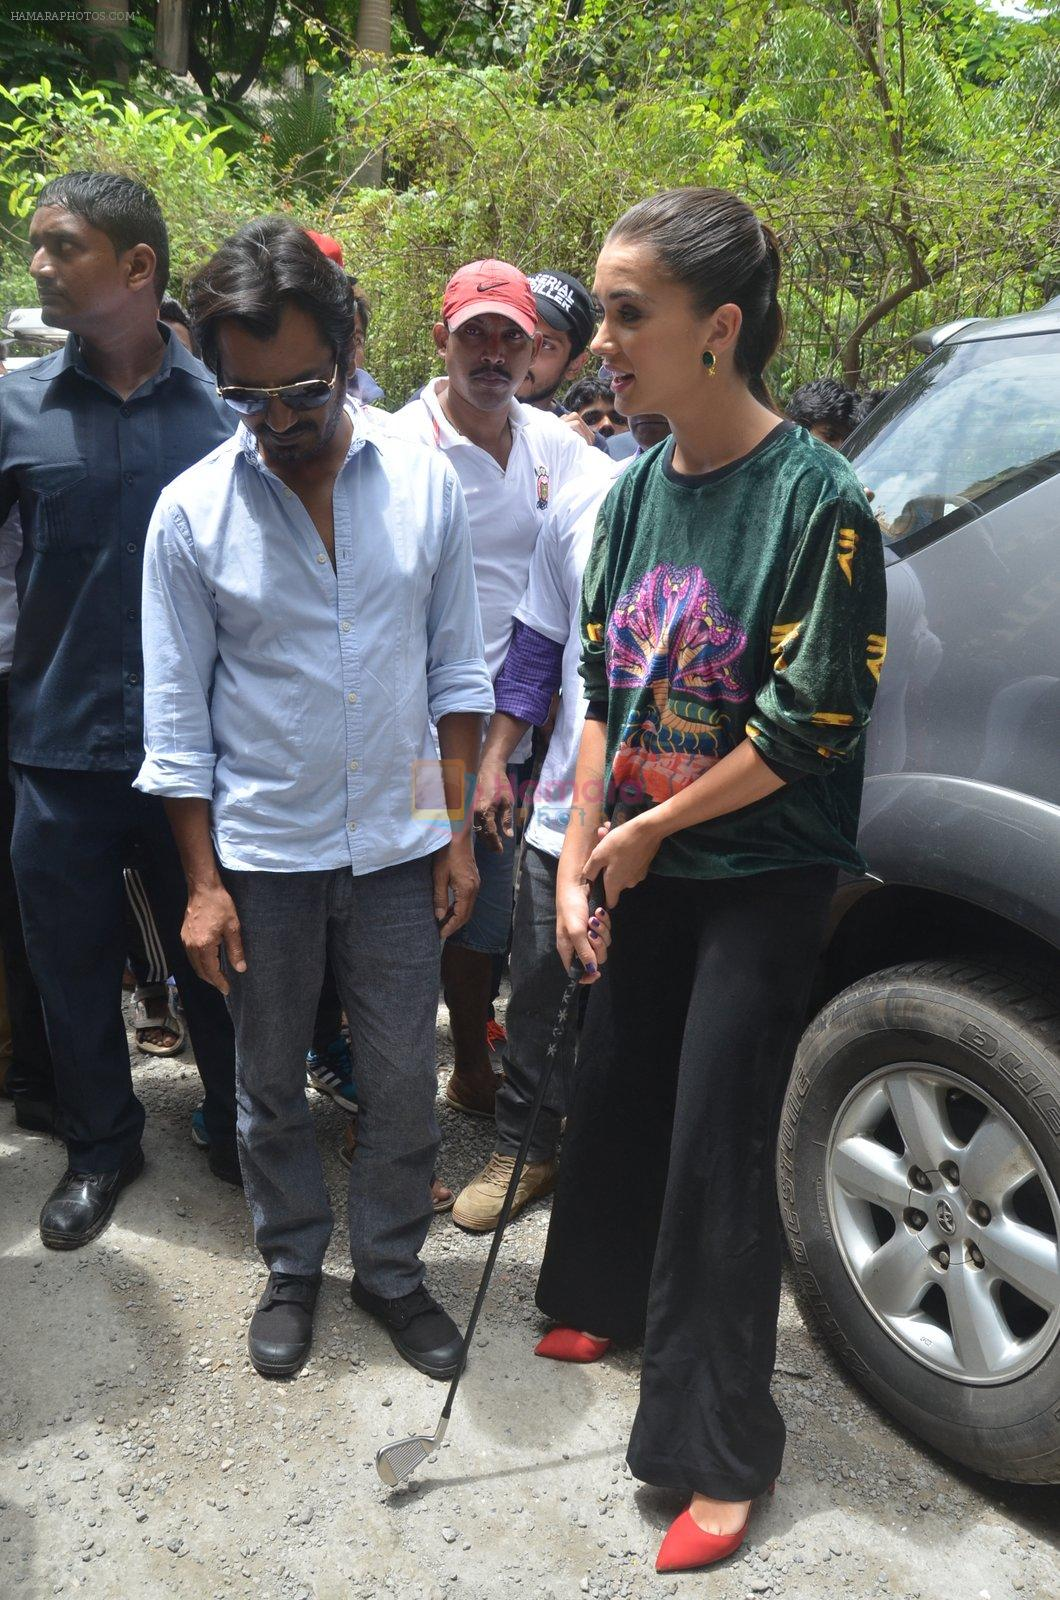 Nawazuddin Siddiqui, Amy Jackson promote their forthcoming film Freaky Ali by playing golf on the streets of Mumbai on 7th Sept 2016